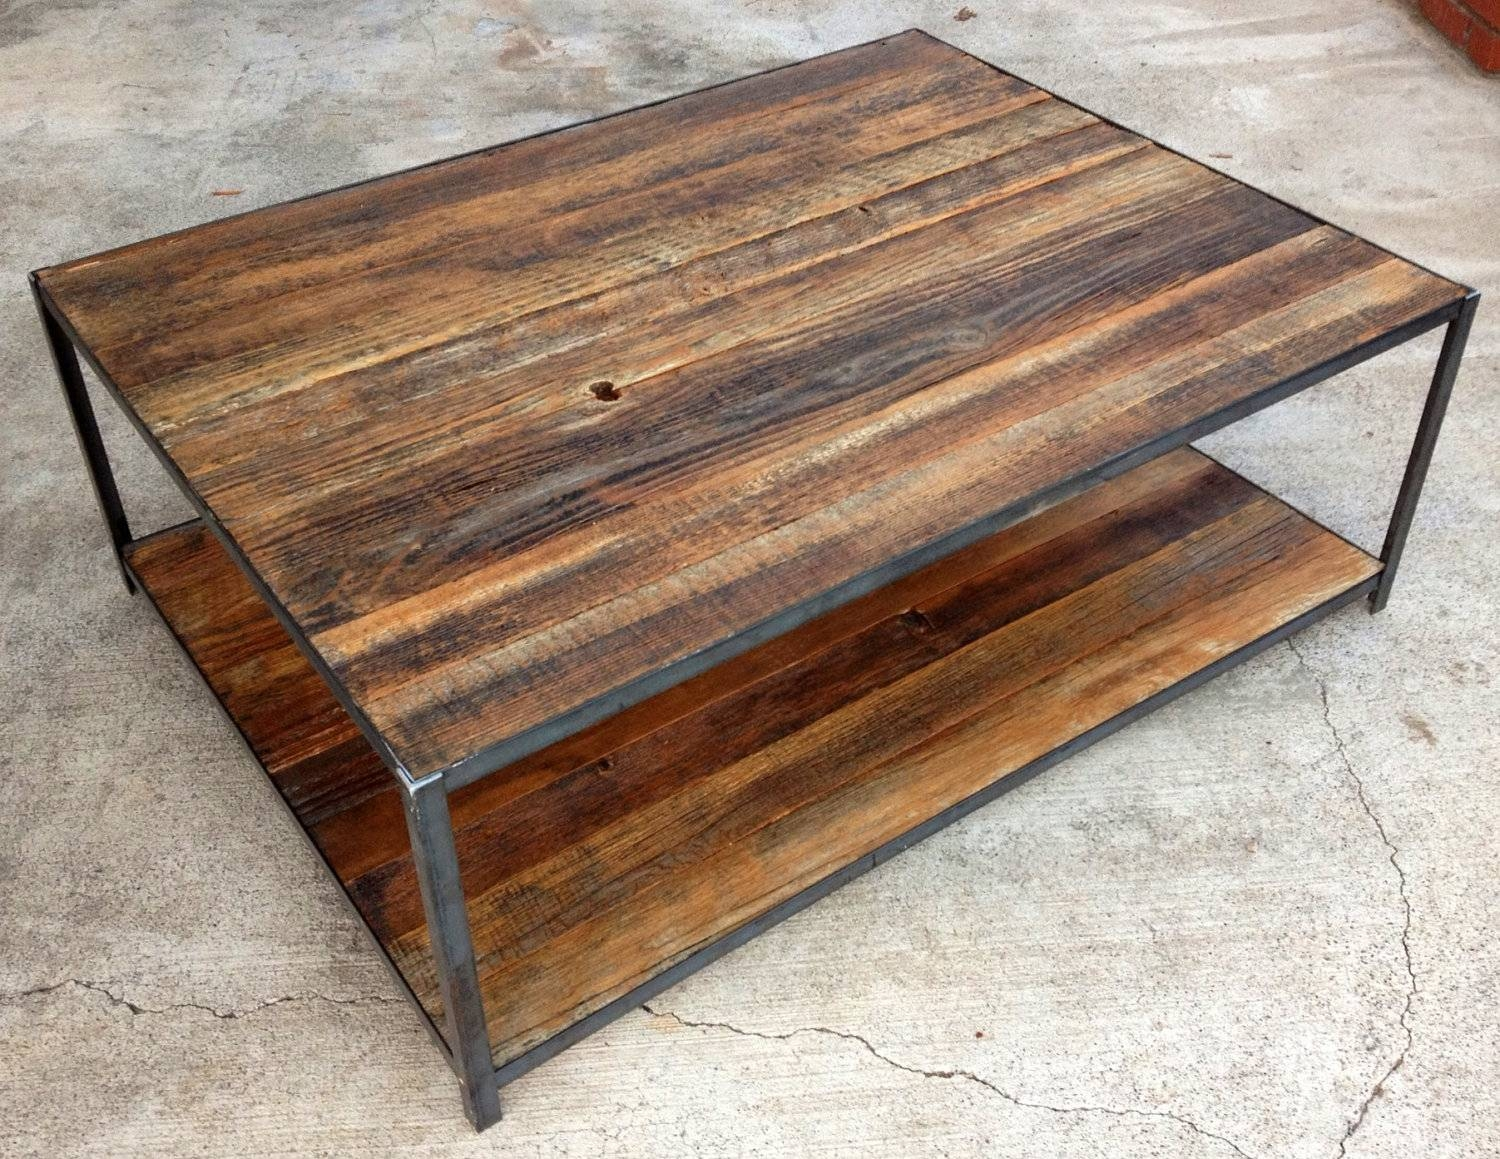 Coffee Tables Ideas: Reclaimed Wood Coffee Table Round Rustic Wood for Handmade Wooden Coffee Tables (Image 2 of 15)